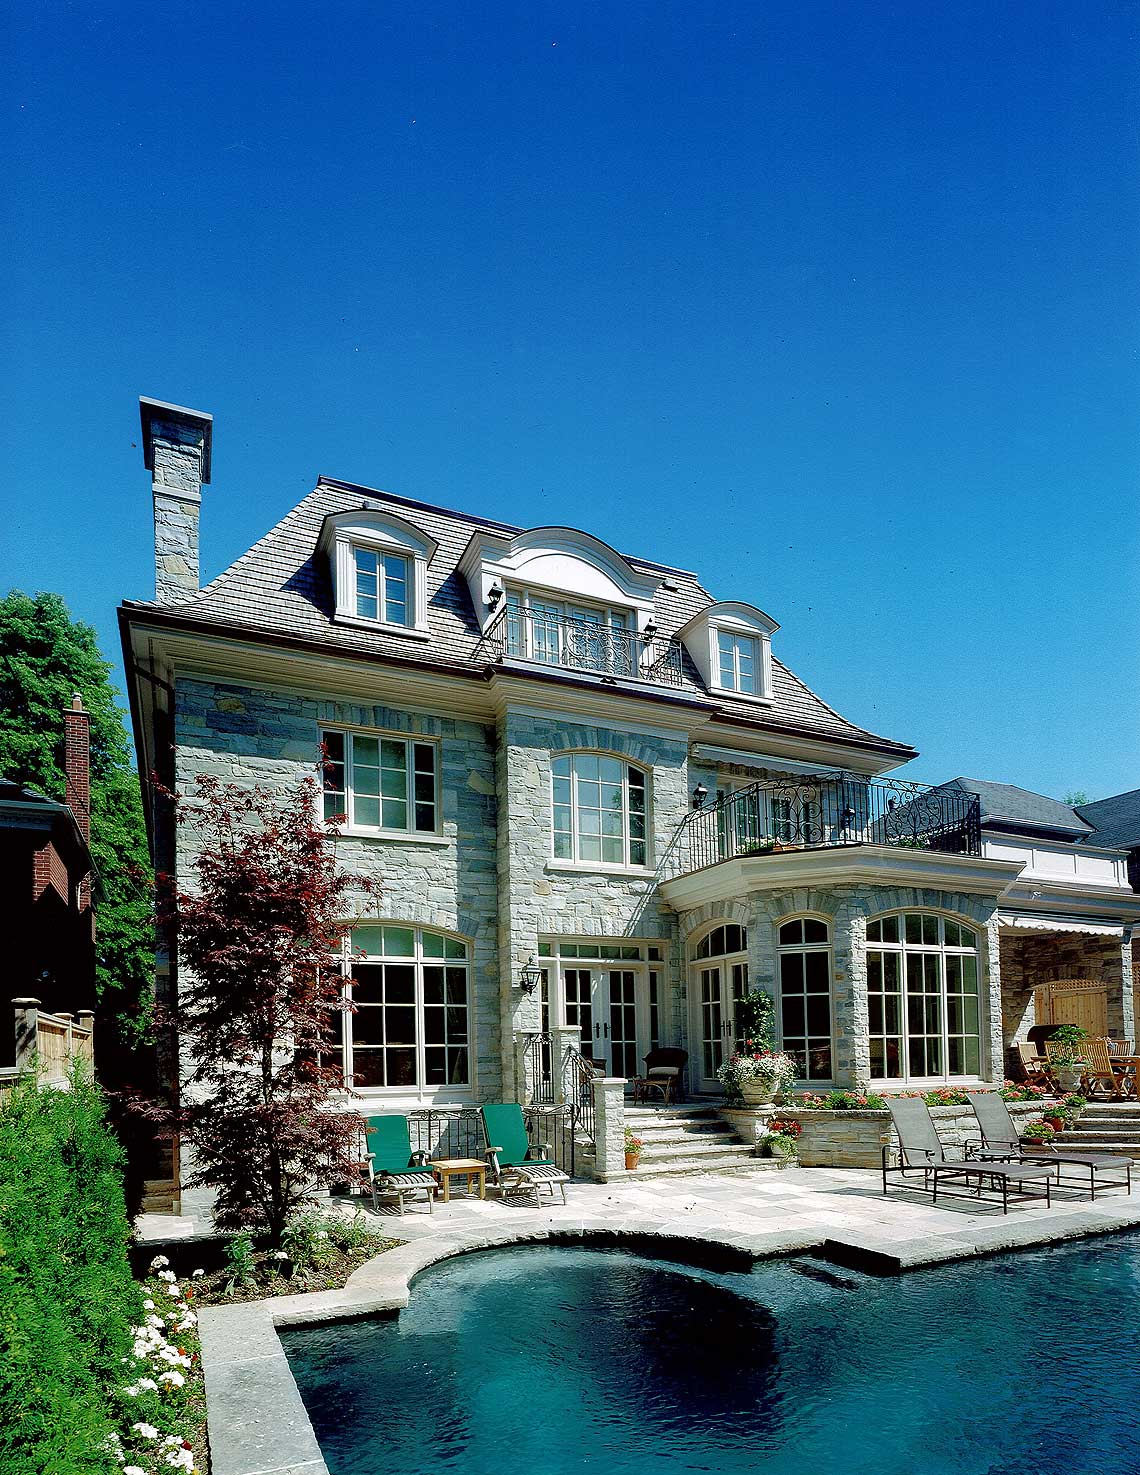 23-customhomes-frenchstyle-MakowArchitects-016